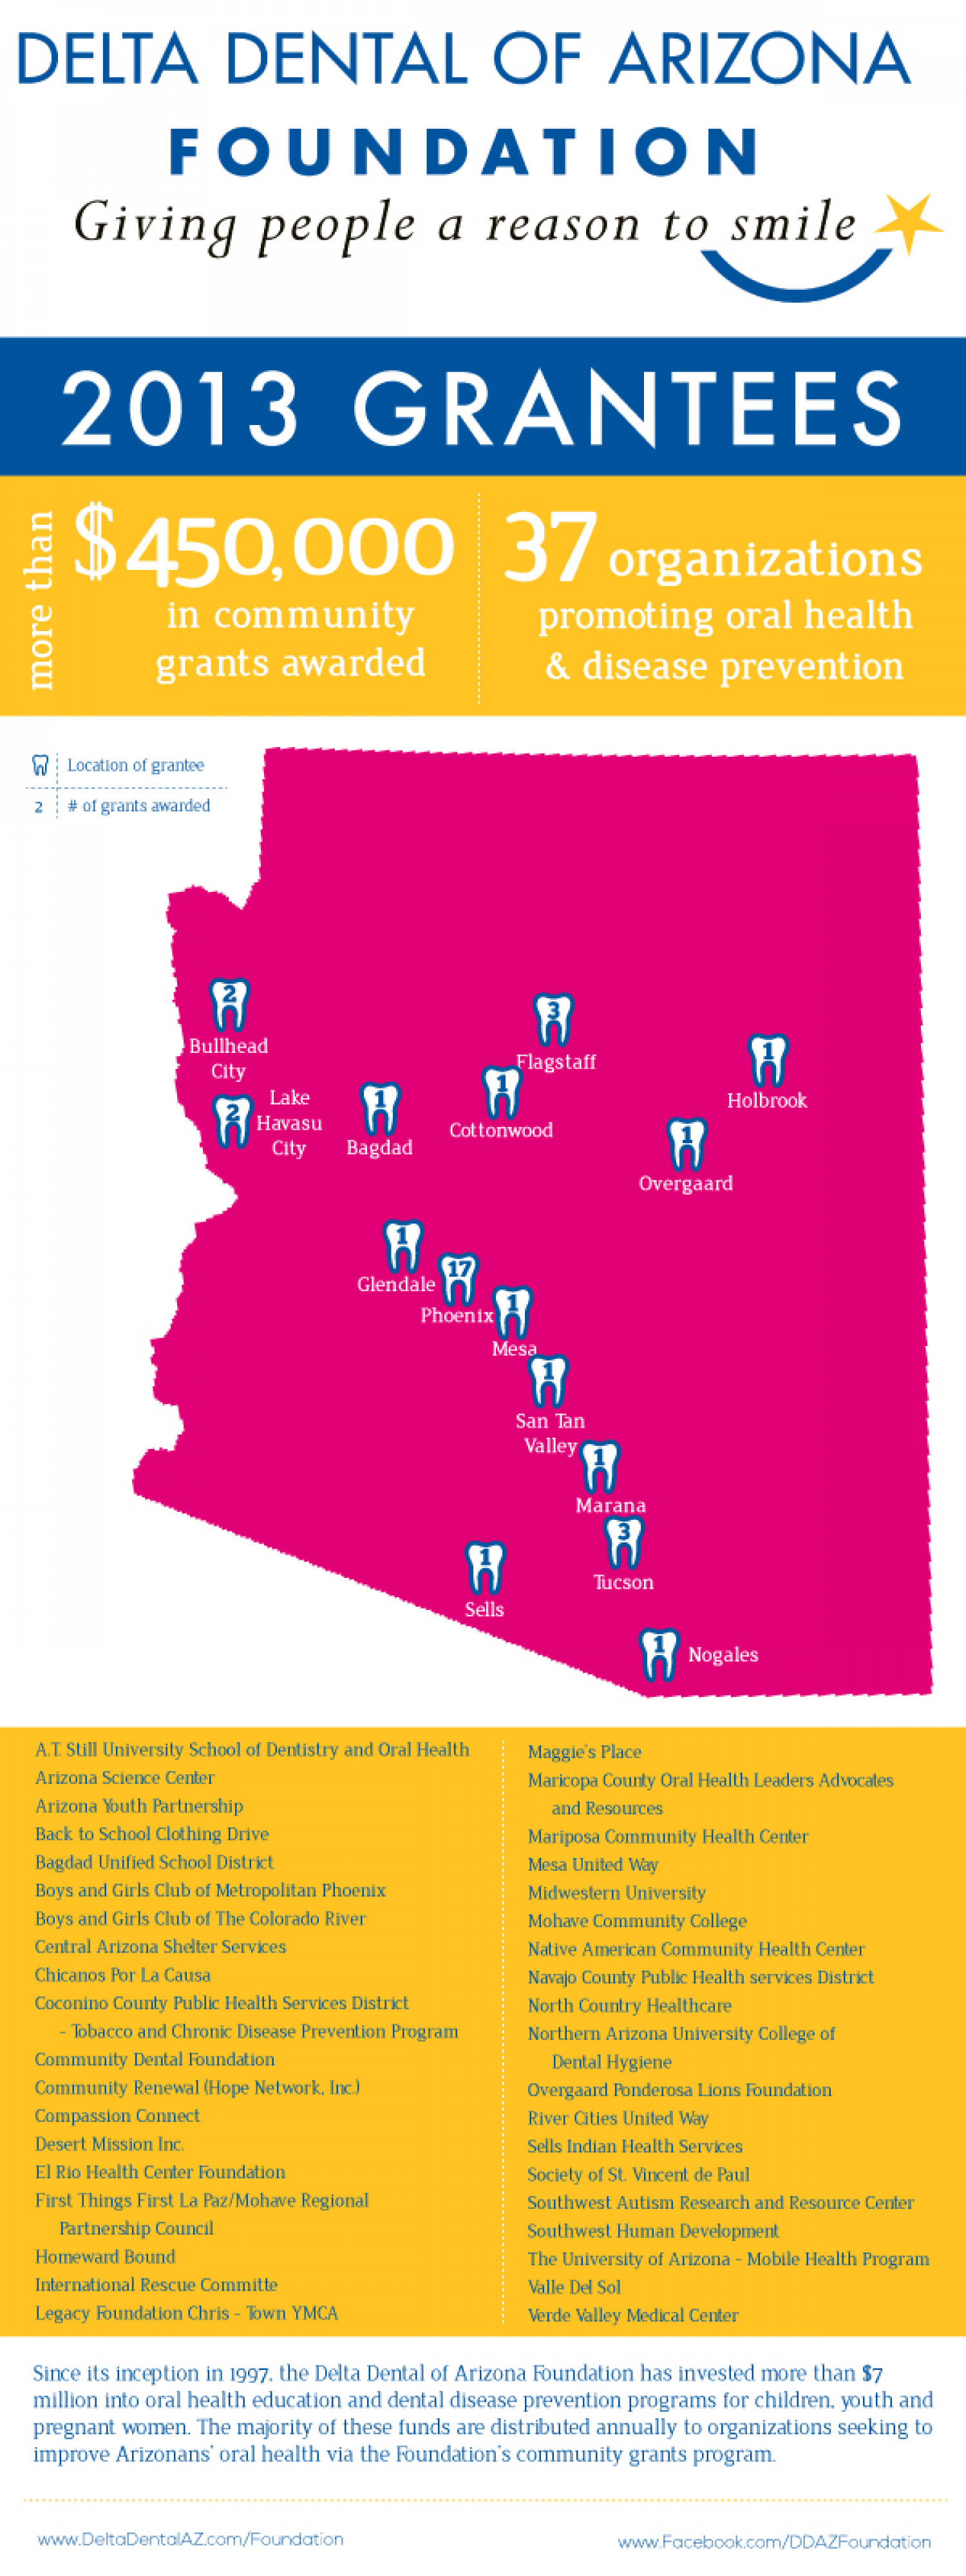 2013 Delta Dental of Arizona Foundation Grantees Infographic